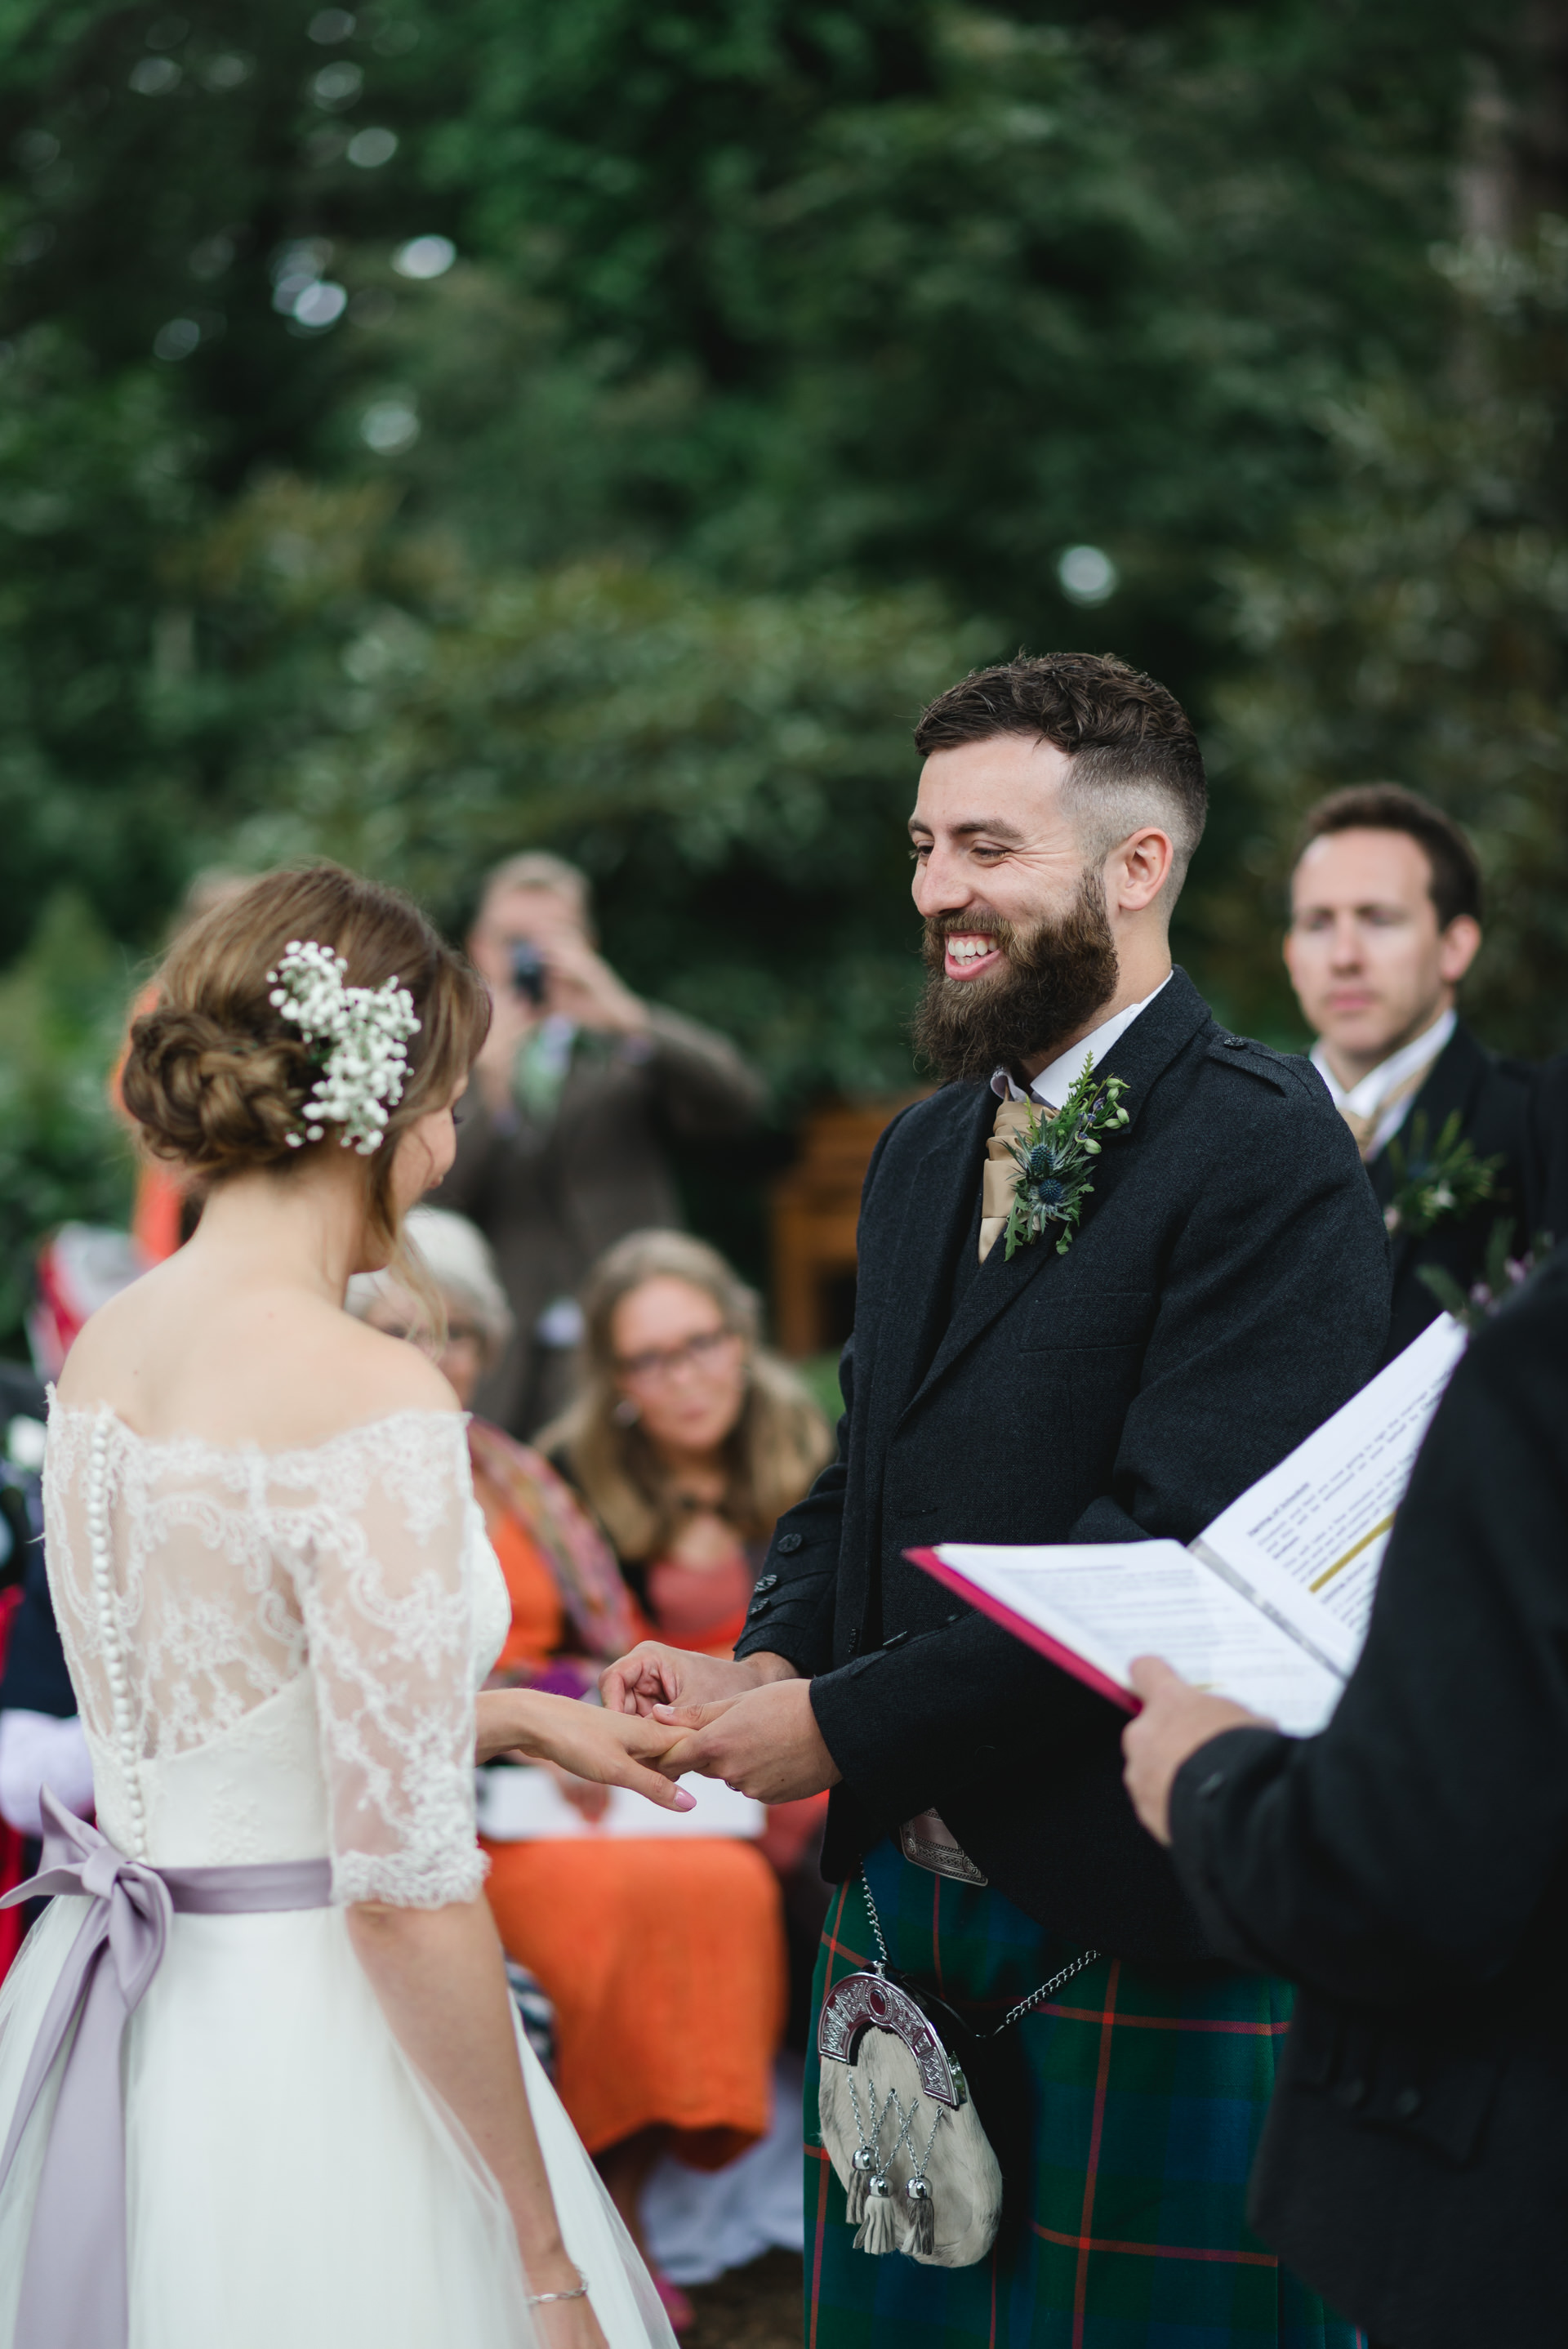 Royal Botanic Gardens Wedding